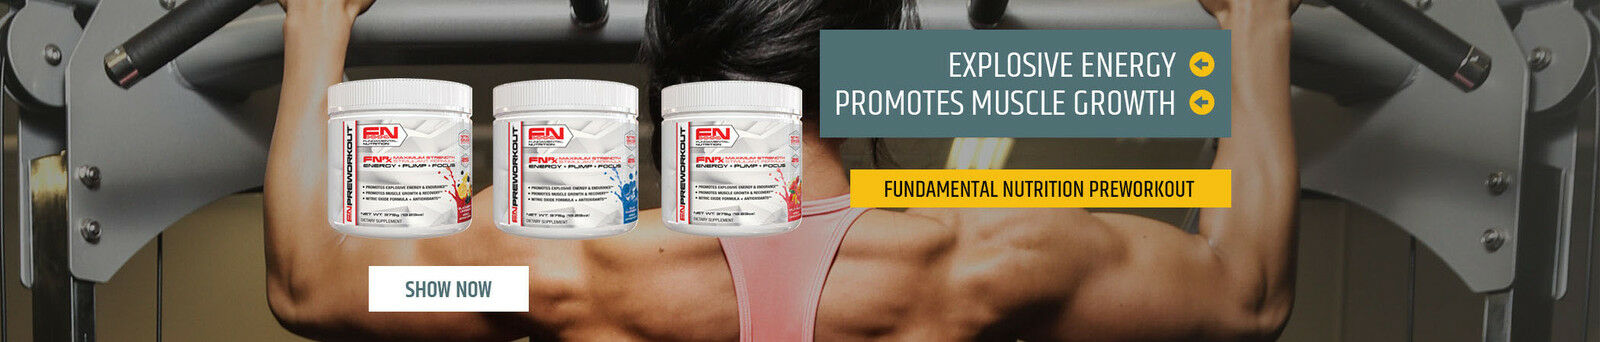 Fundamental Nutrition